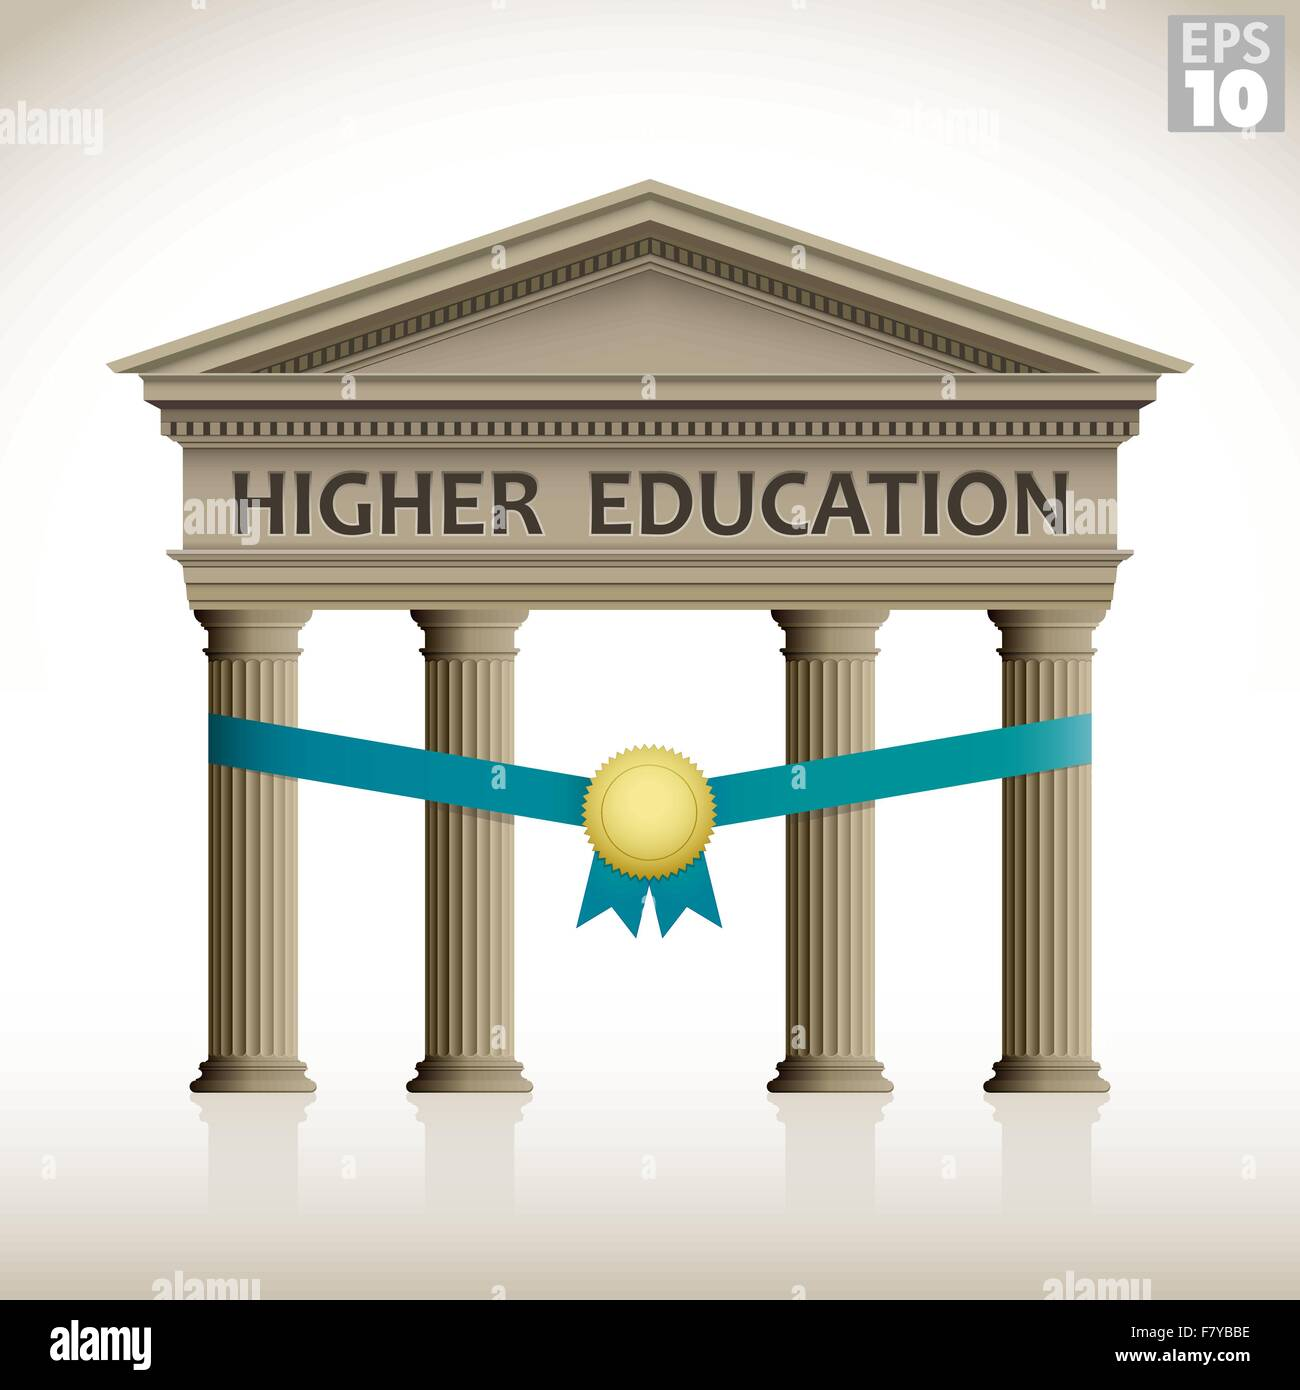 Higher education roman building inauguration or scholarship includes columns, ribbon and medal - Stock Image